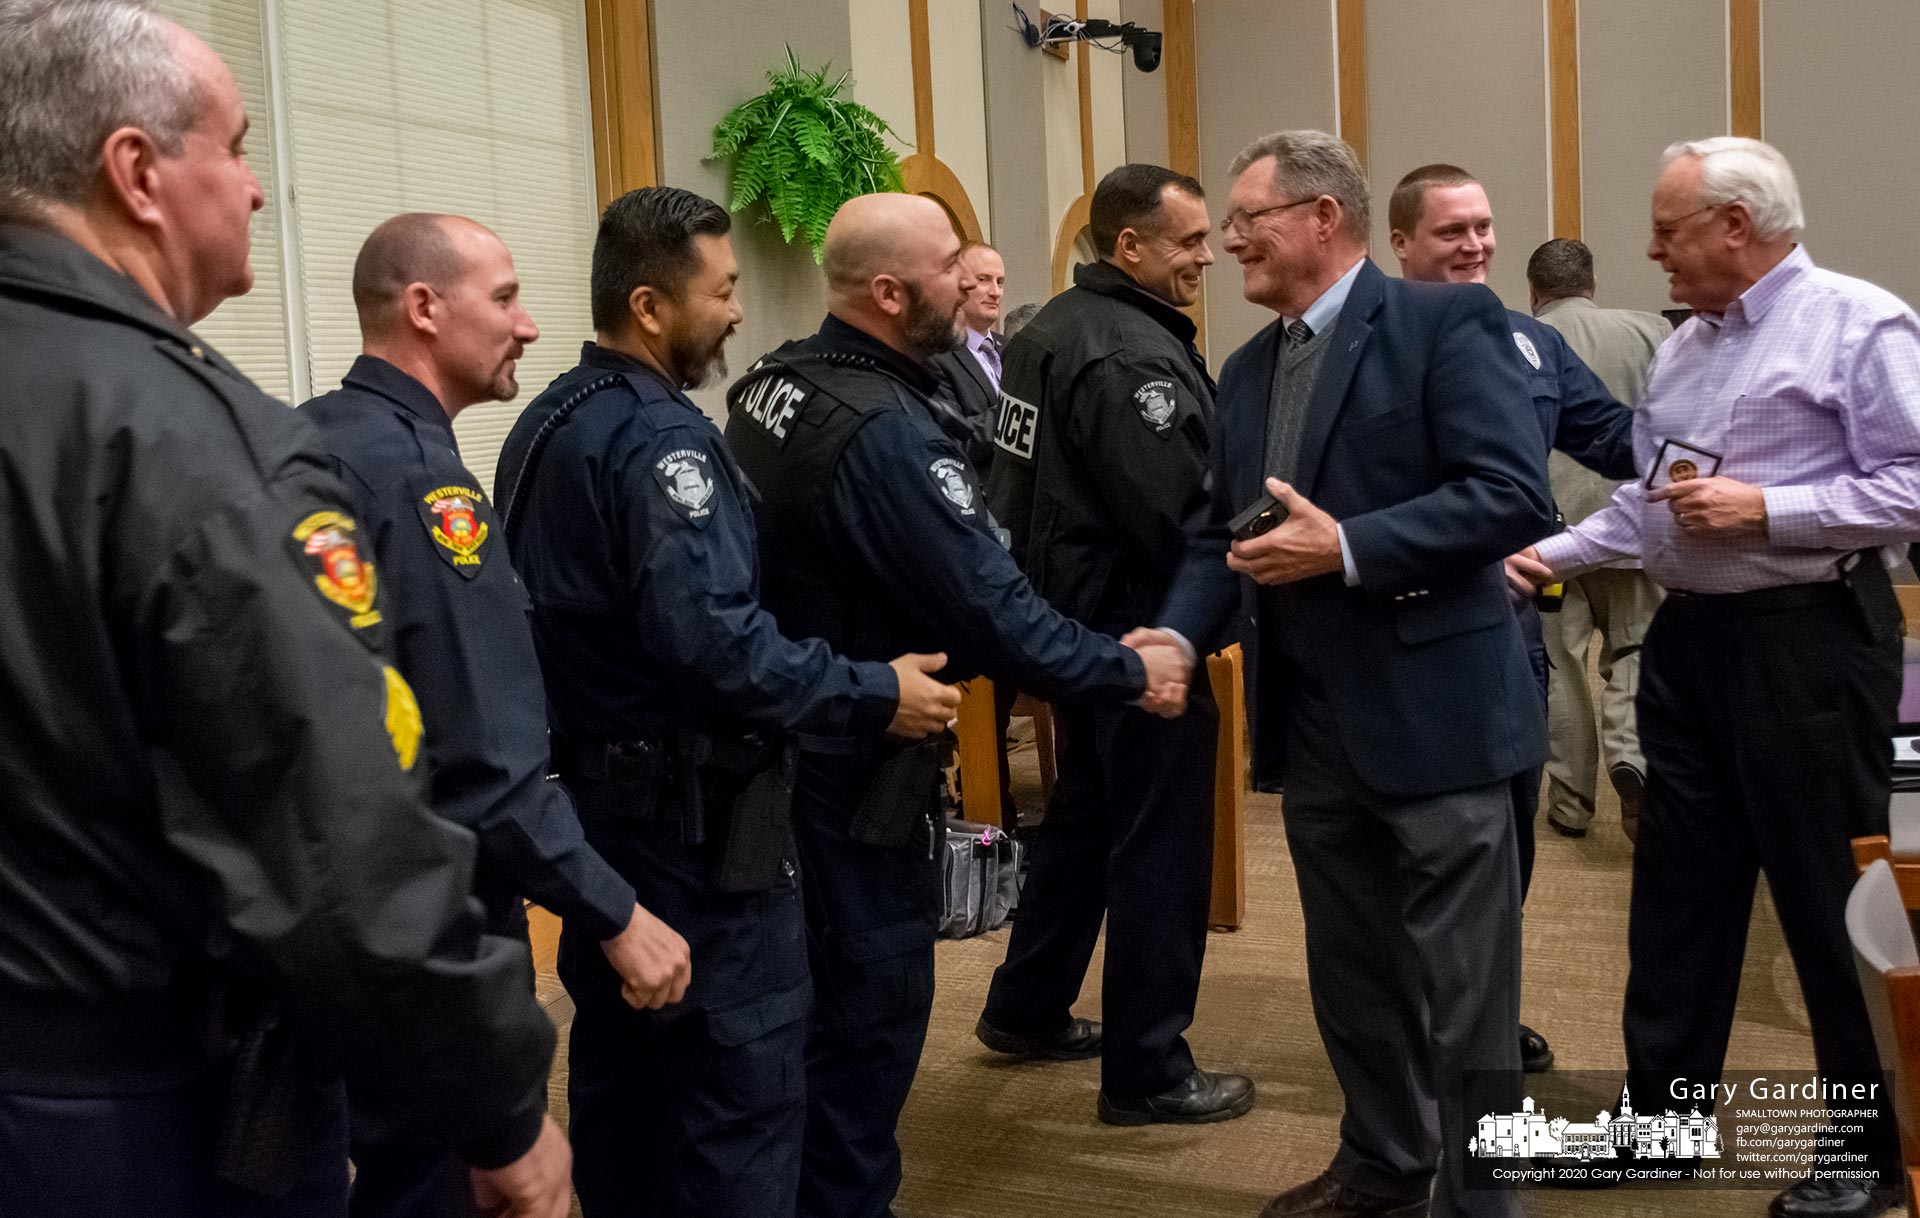 Westerville Police Reserve officers Ted Bretthauer, in blue blazer, and John Clay, right, receive congratulatory handshakes from other officers after the two received commendation coins after retiring from the police force with 80 years of law enforcement experience between the two men. My Final Photo for Jan. 7, 2020.